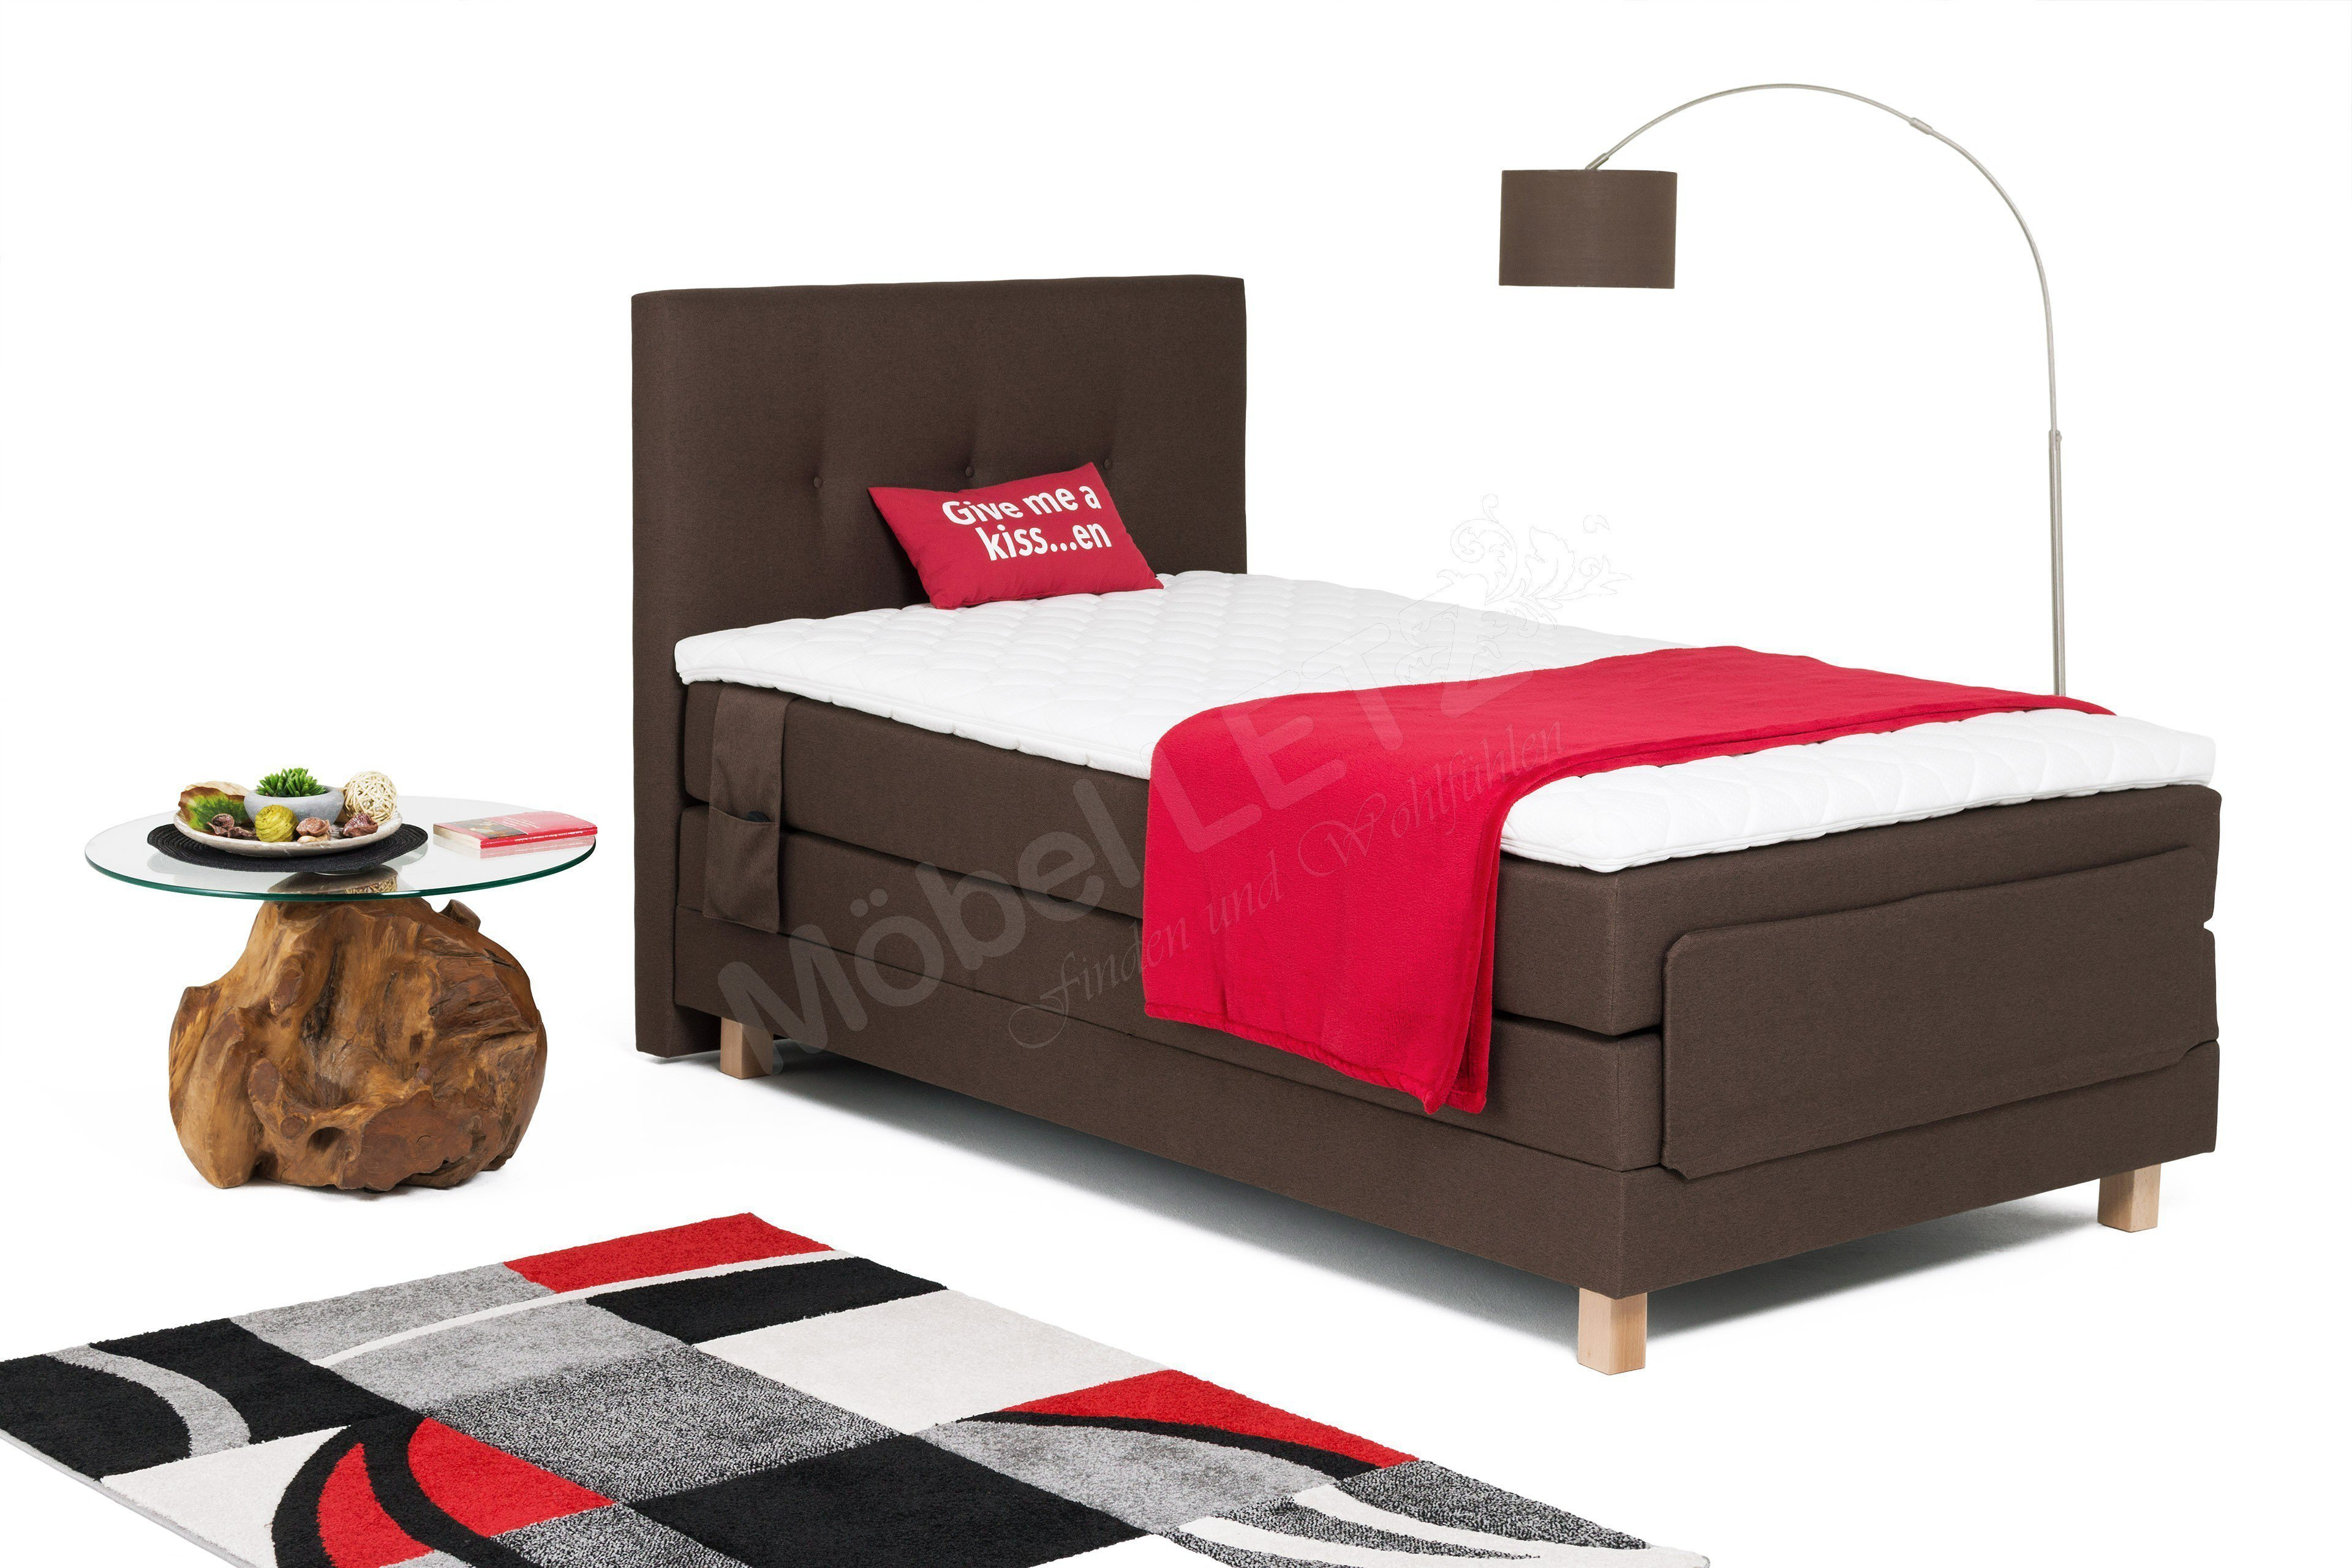 boxspringbett jensen von skandinavische m bel mit 3 motoren m bel letz ihr online shop. Black Bedroom Furniture Sets. Home Design Ideas